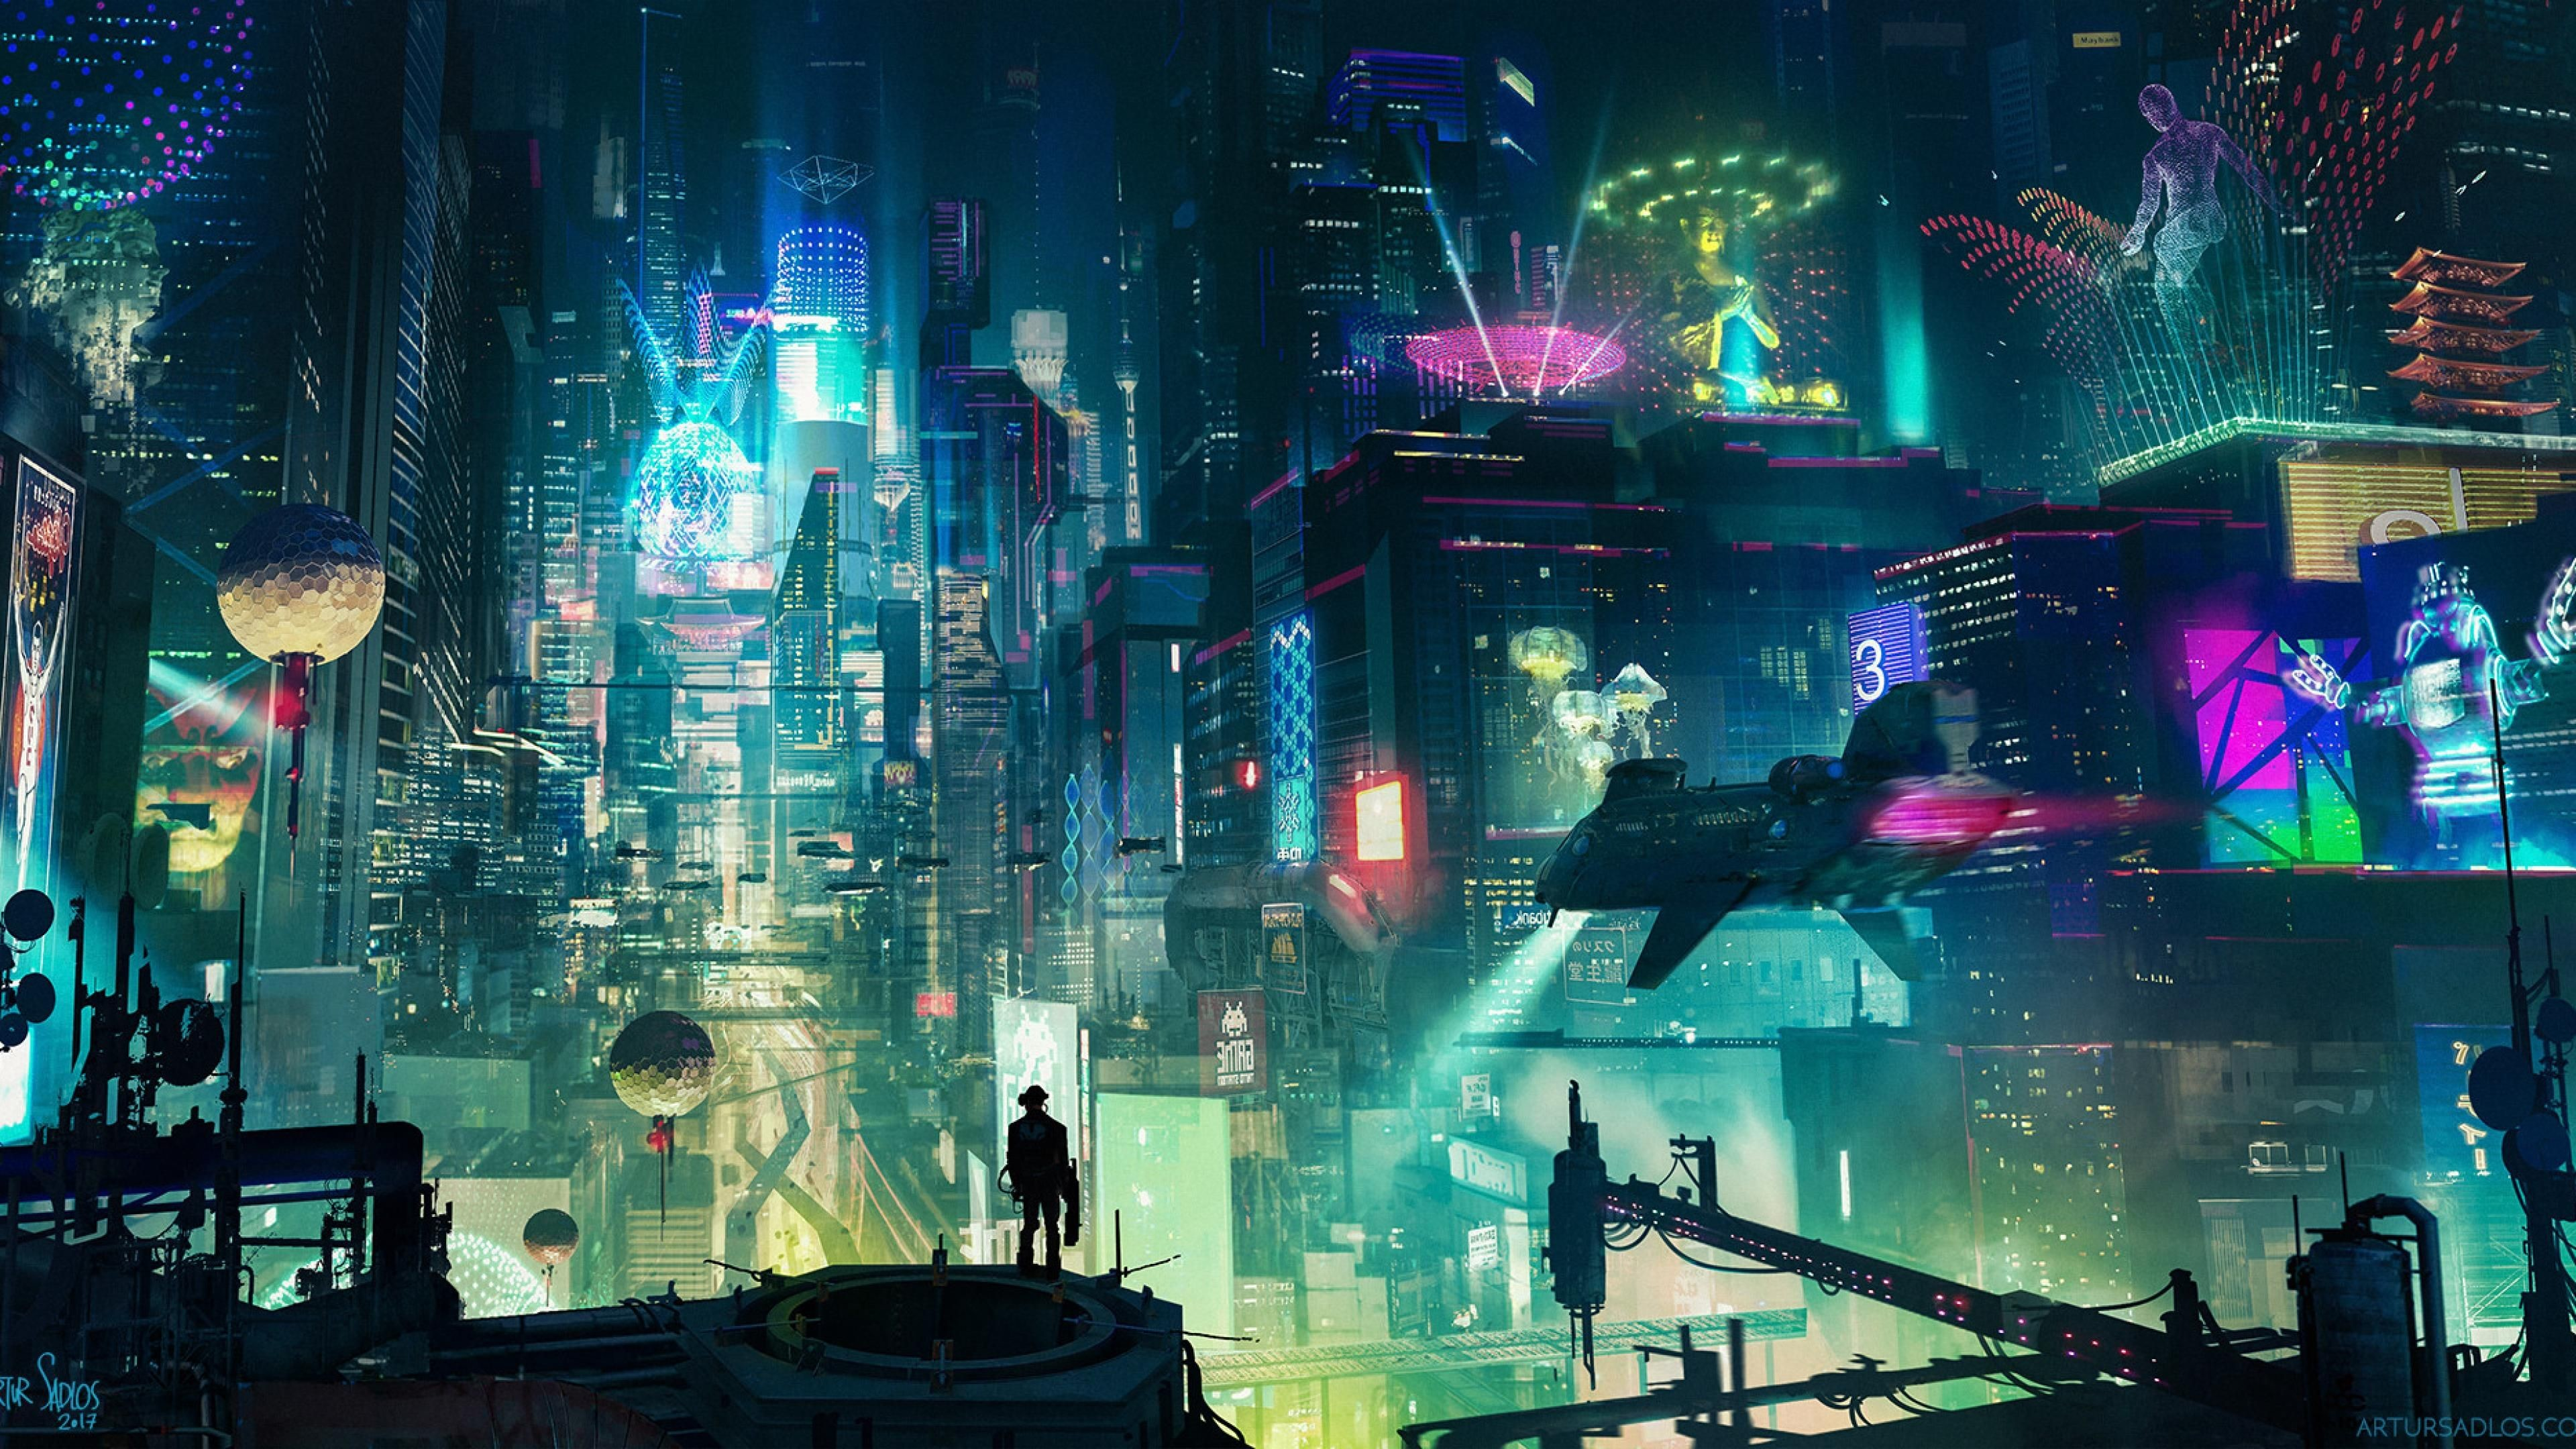 Landscape Portrait Blade Runner City Concept Art 323351 Hd Wallpaper Backgrounds Download